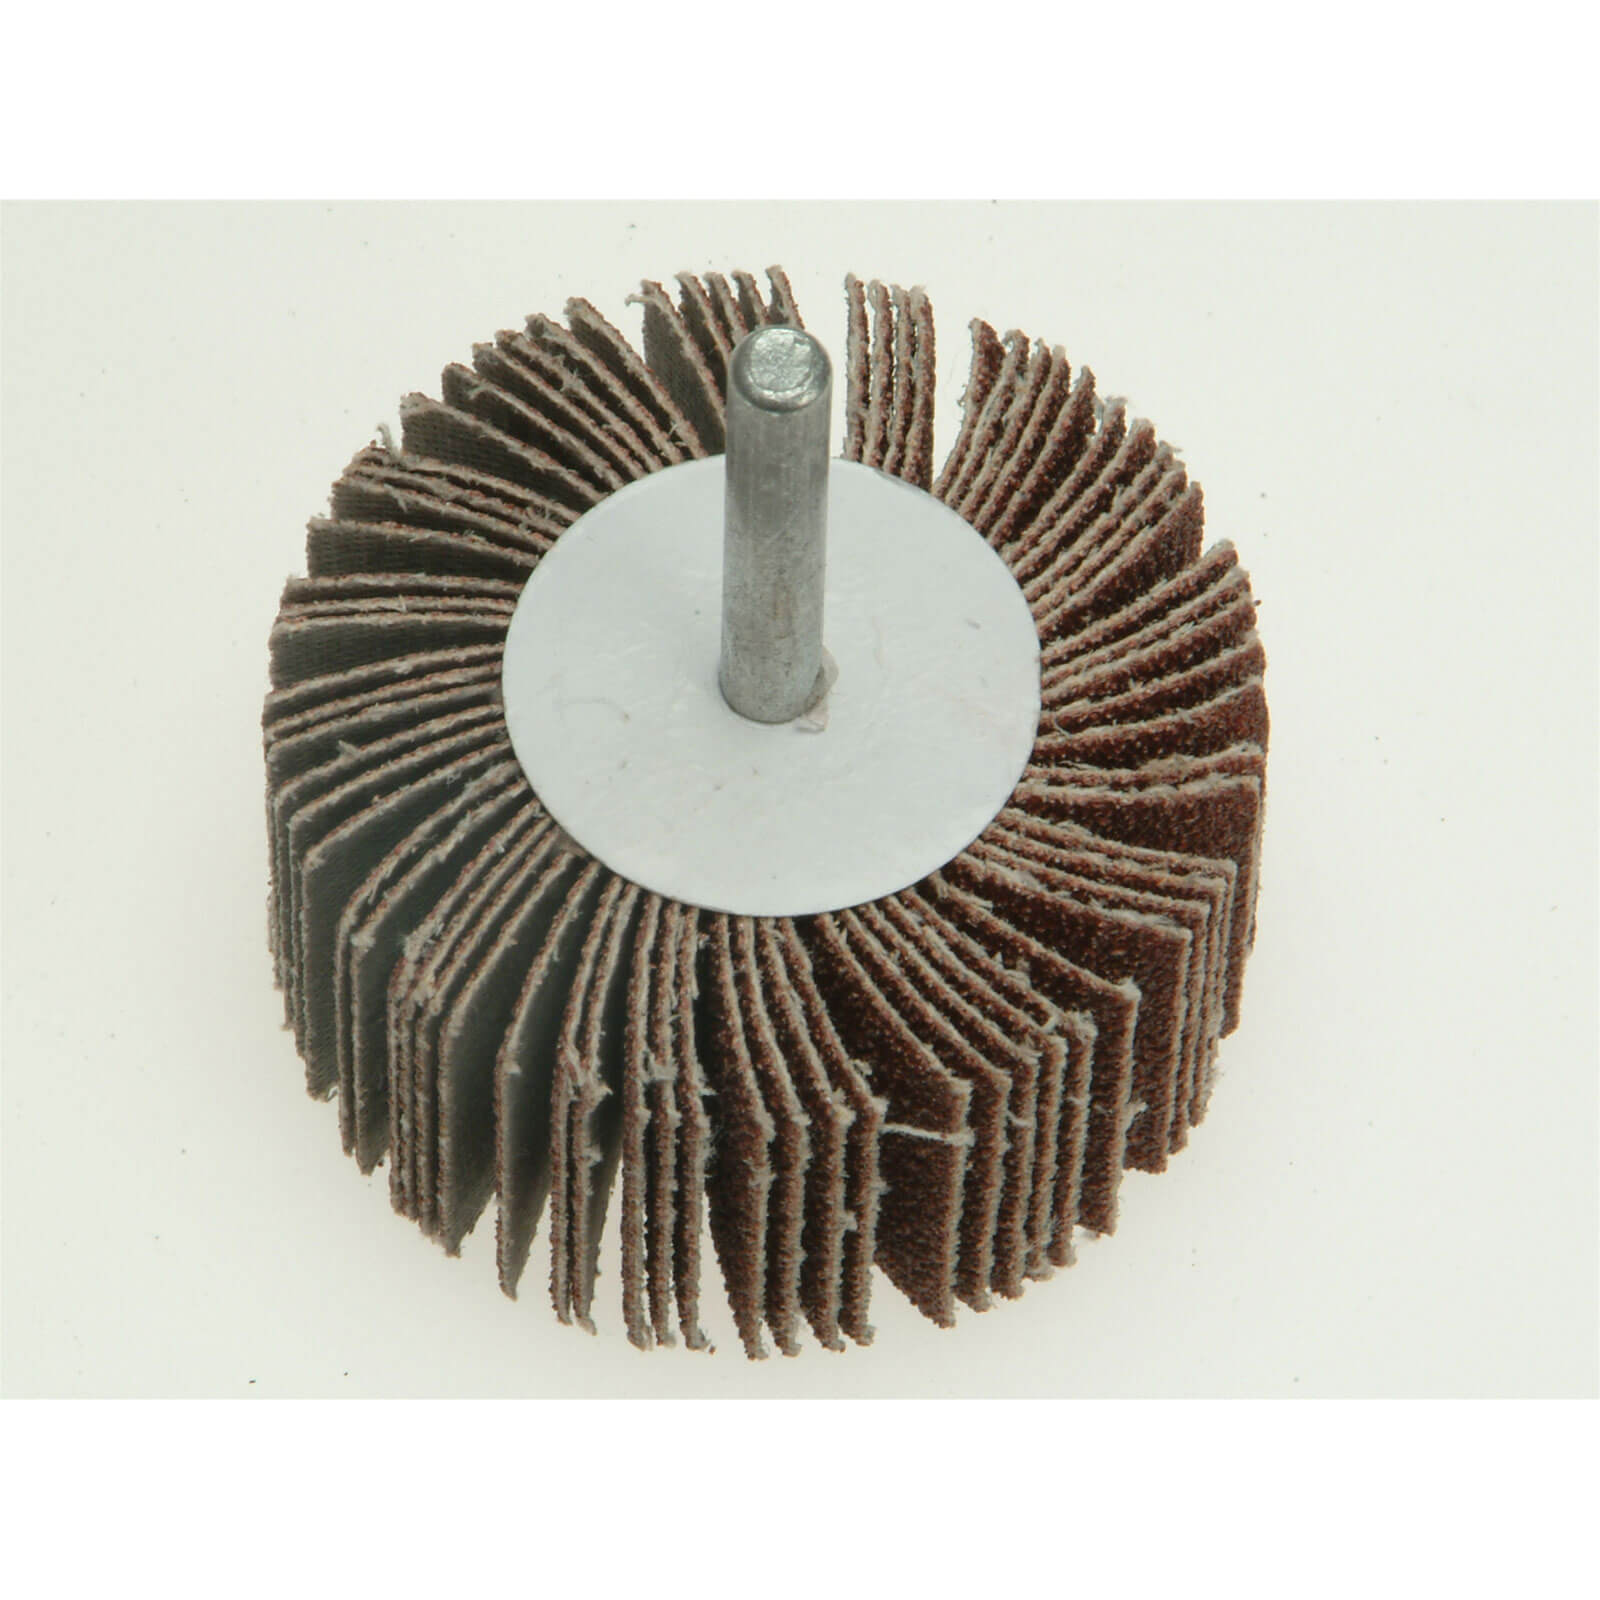 Image of Faithfull Abrasive Flap Wheel 60mm 30mm 100g